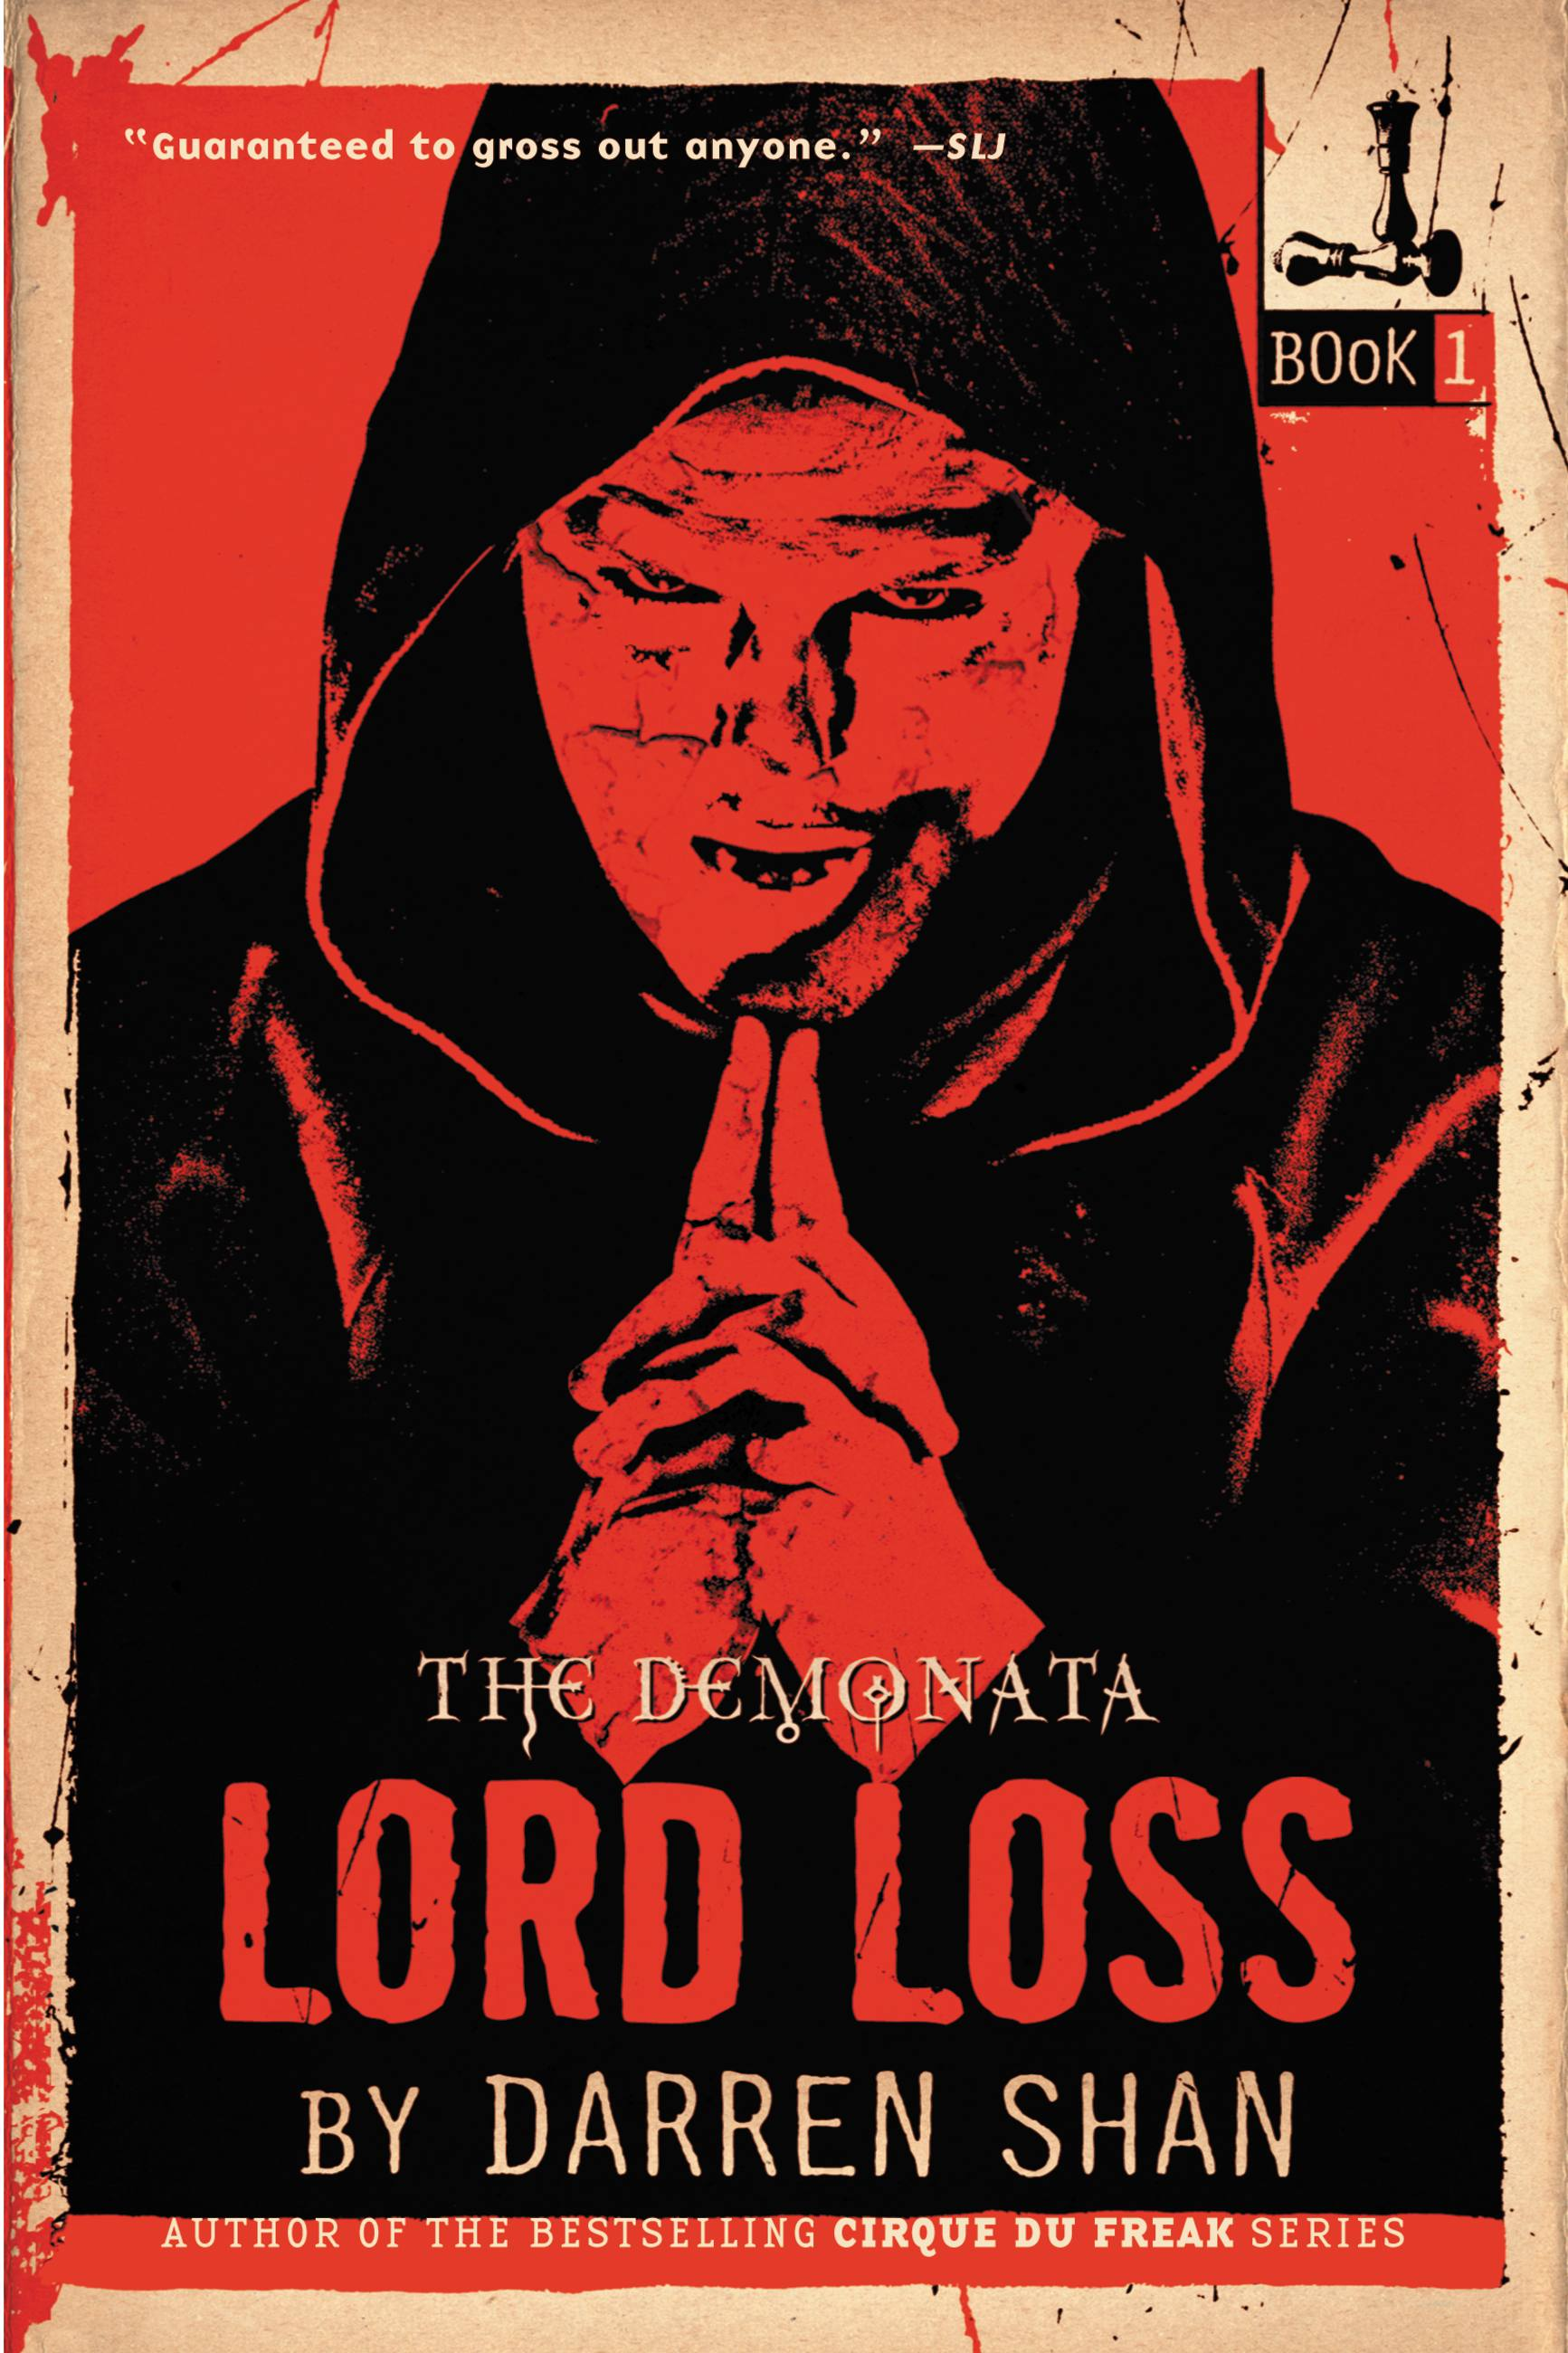 The Demonata #1: Lord Loss Book 1 in the Demonata series